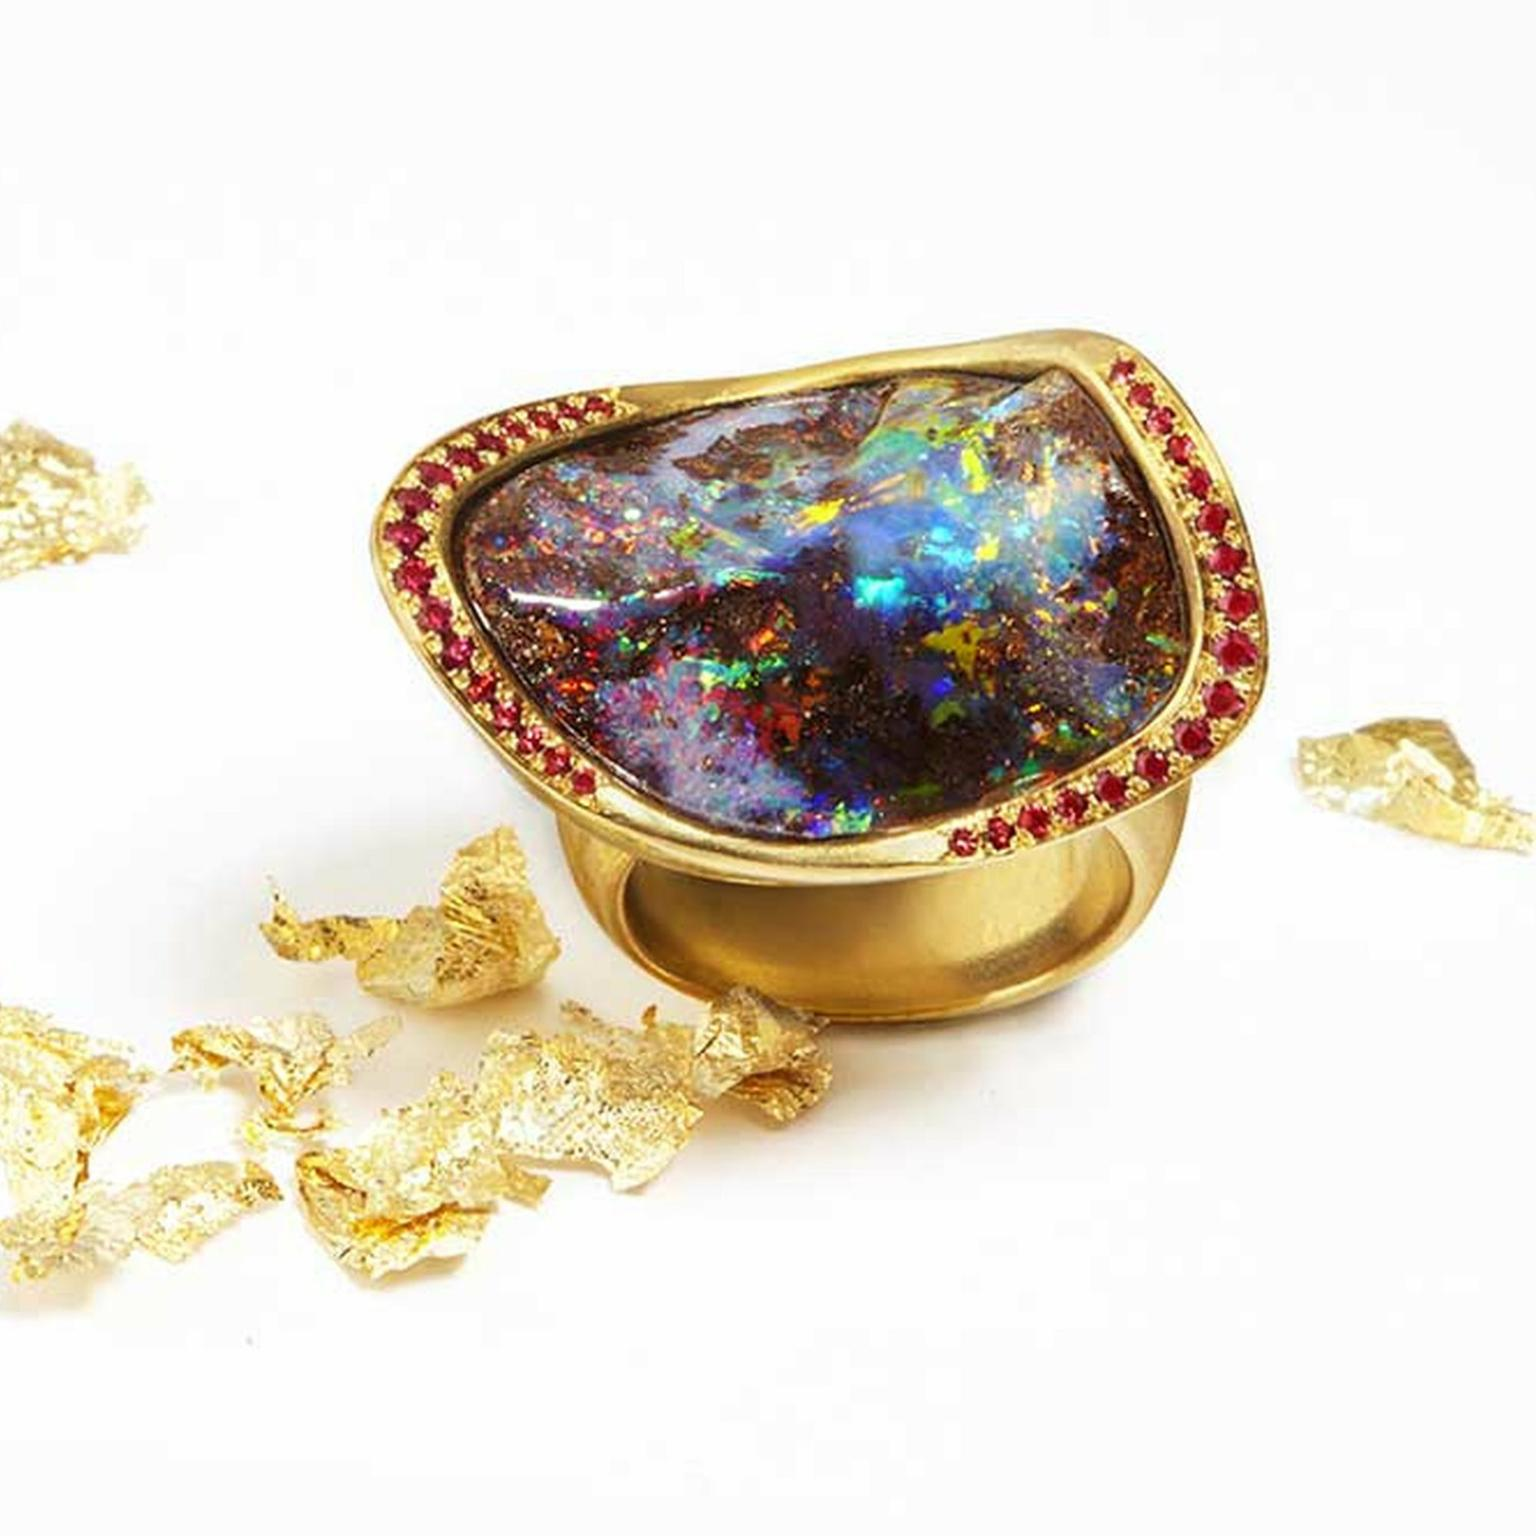 Katherine Jetter Marquis Boulder opal ring in gold with pavé rubies.